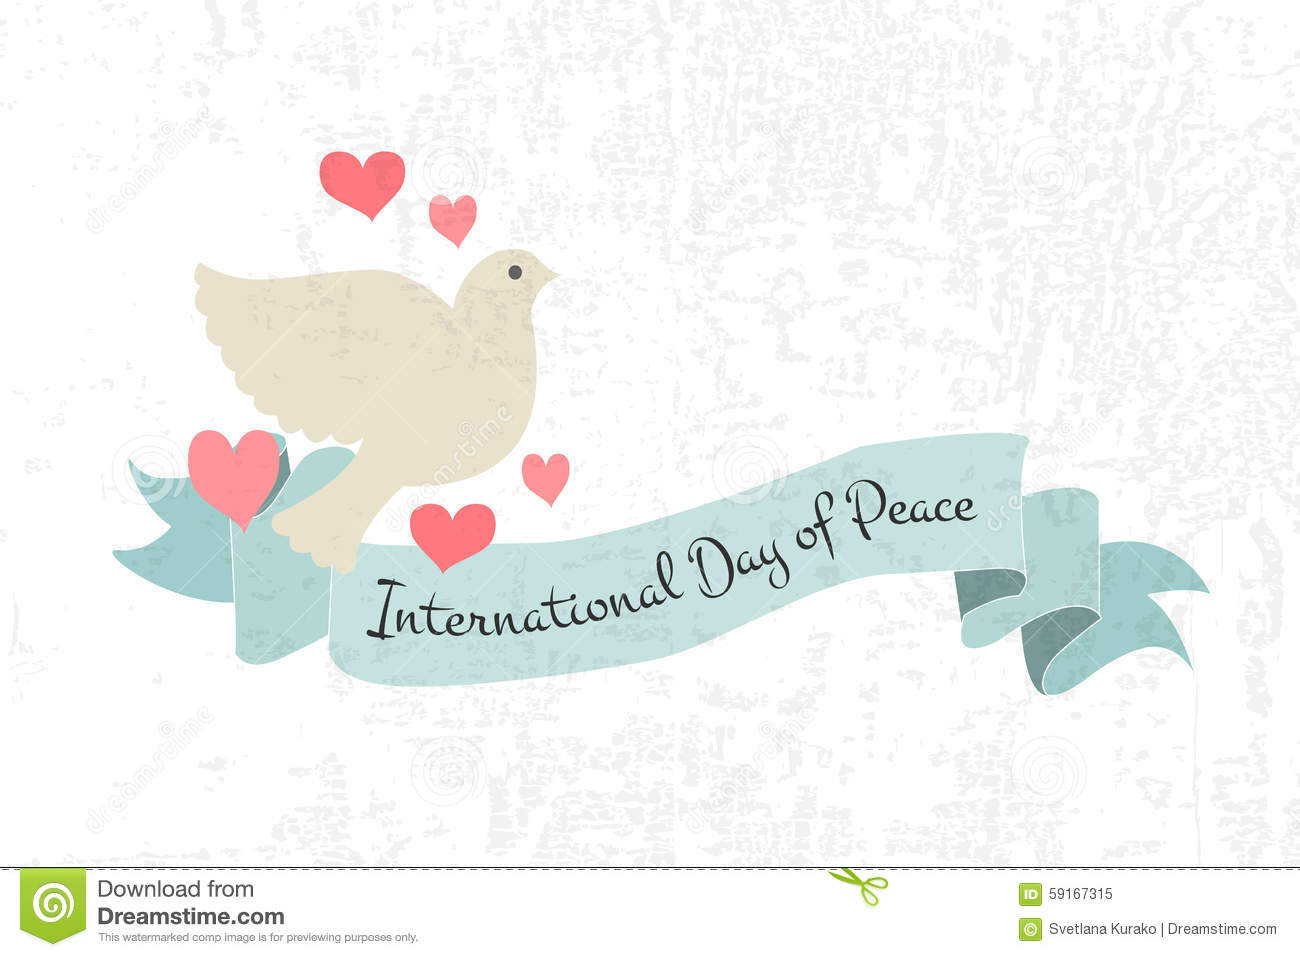 104-International Peace Day Wishes